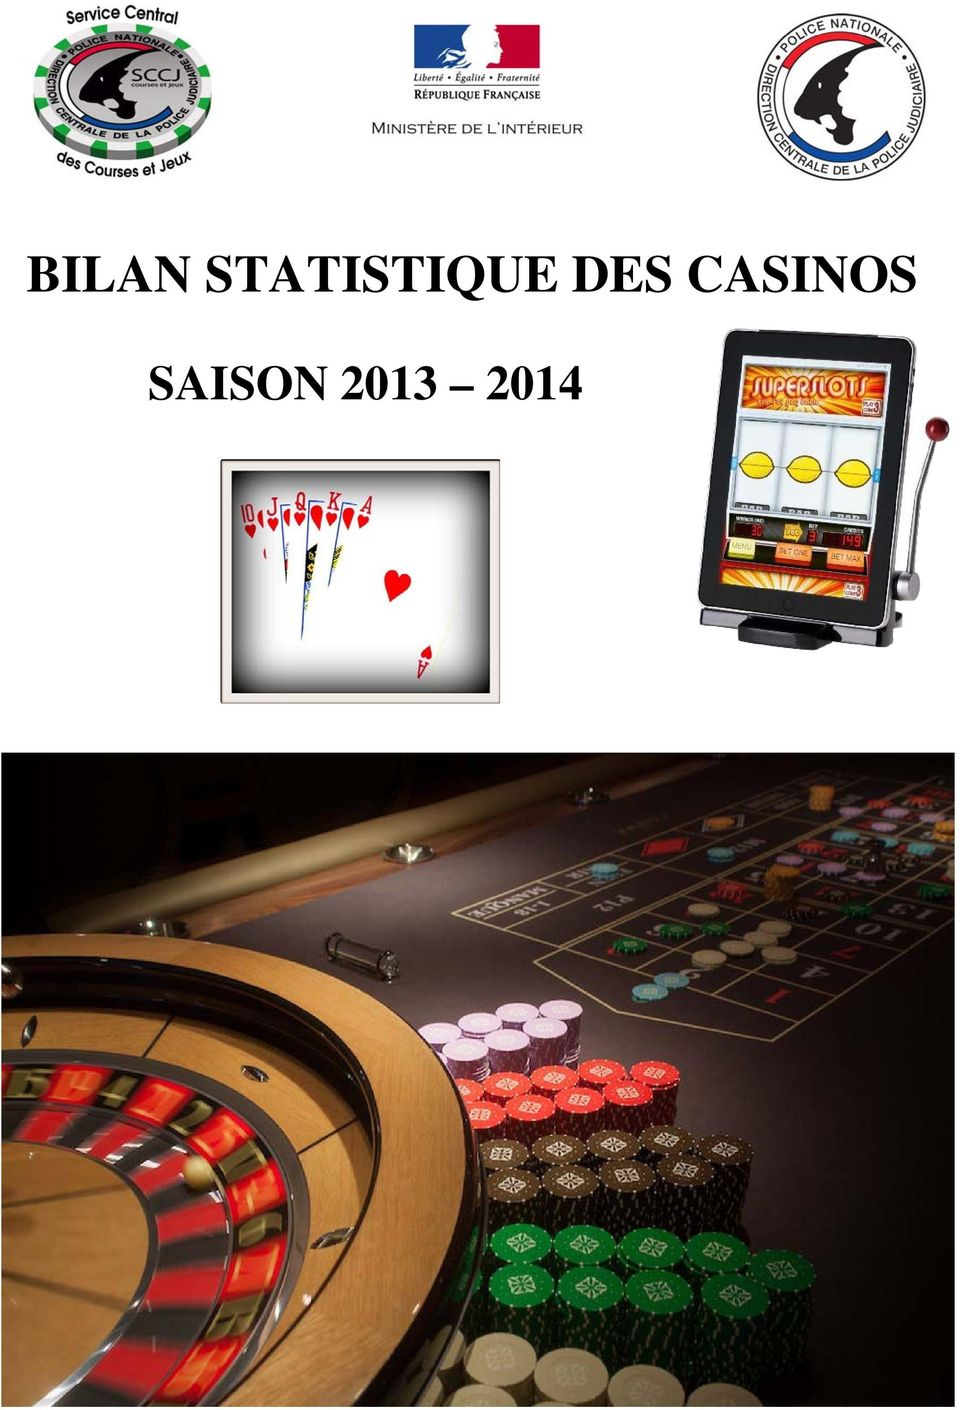 DES CASINOS